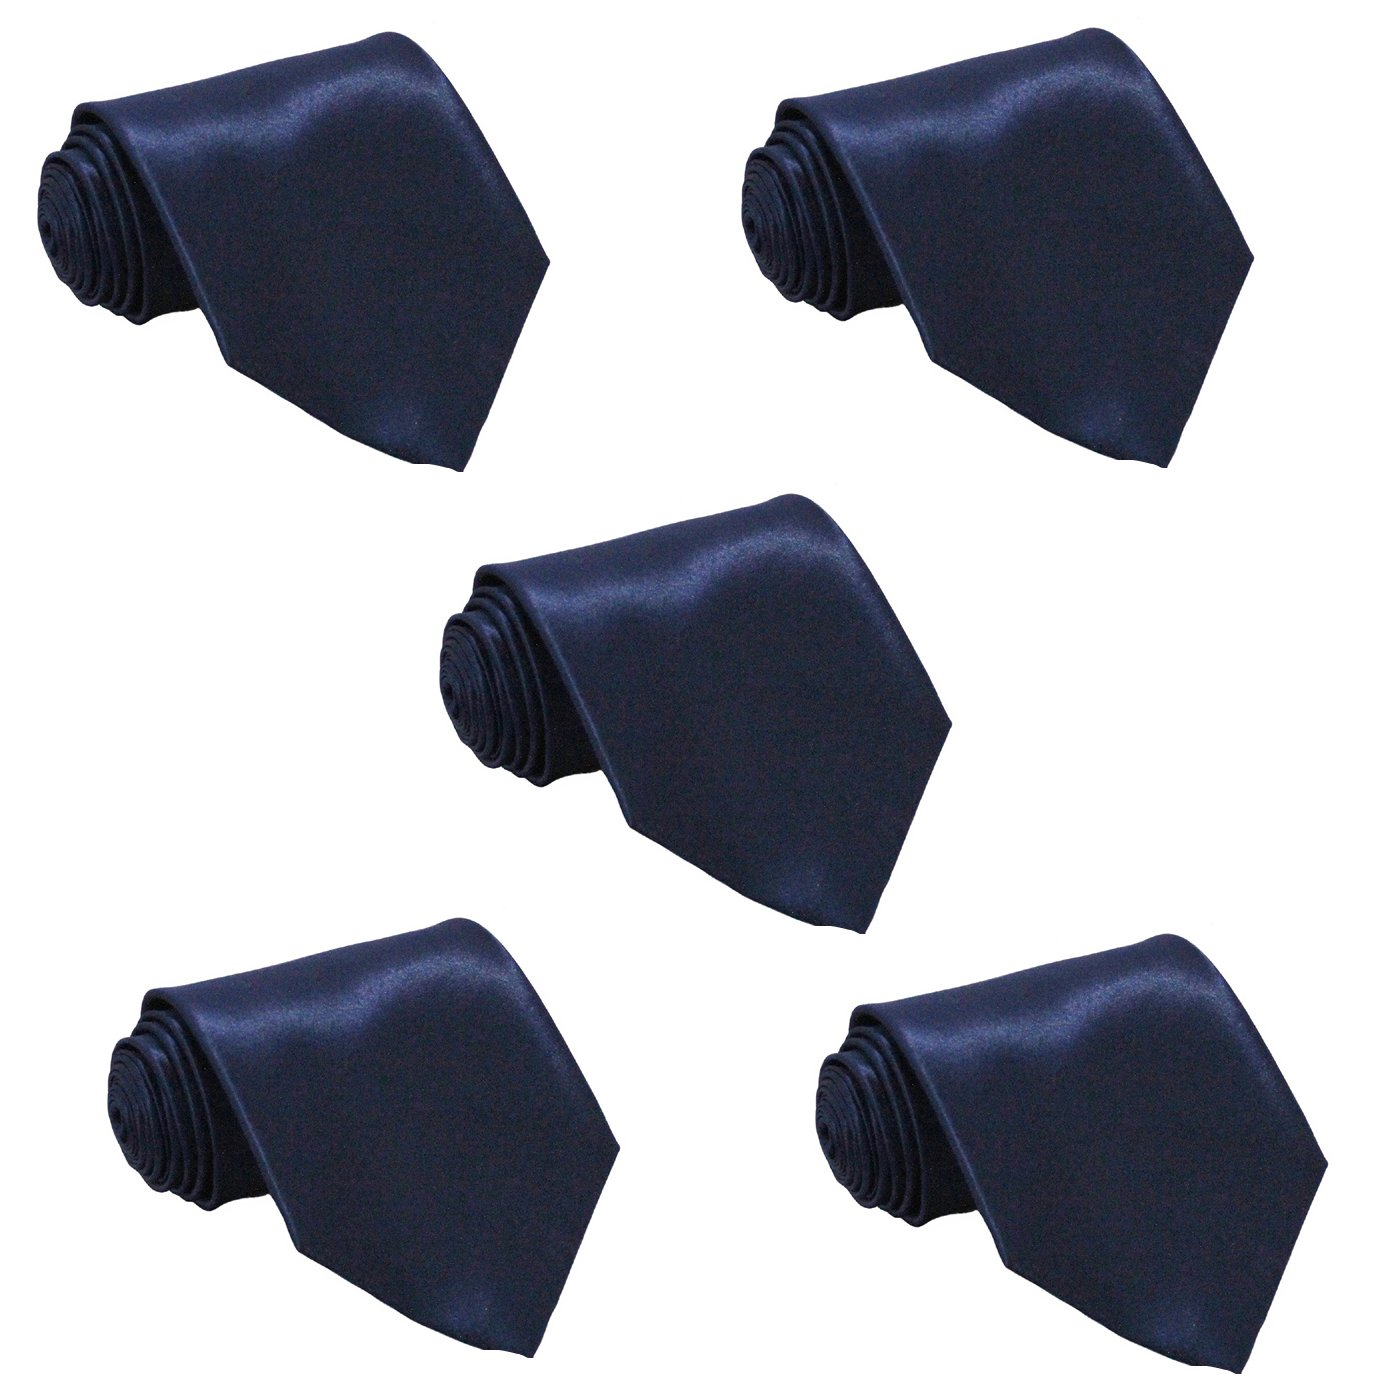 Mens Skinny Tie Wholesale Lot of 5 Mens Solid Color Slim Ties (Navy Blue)